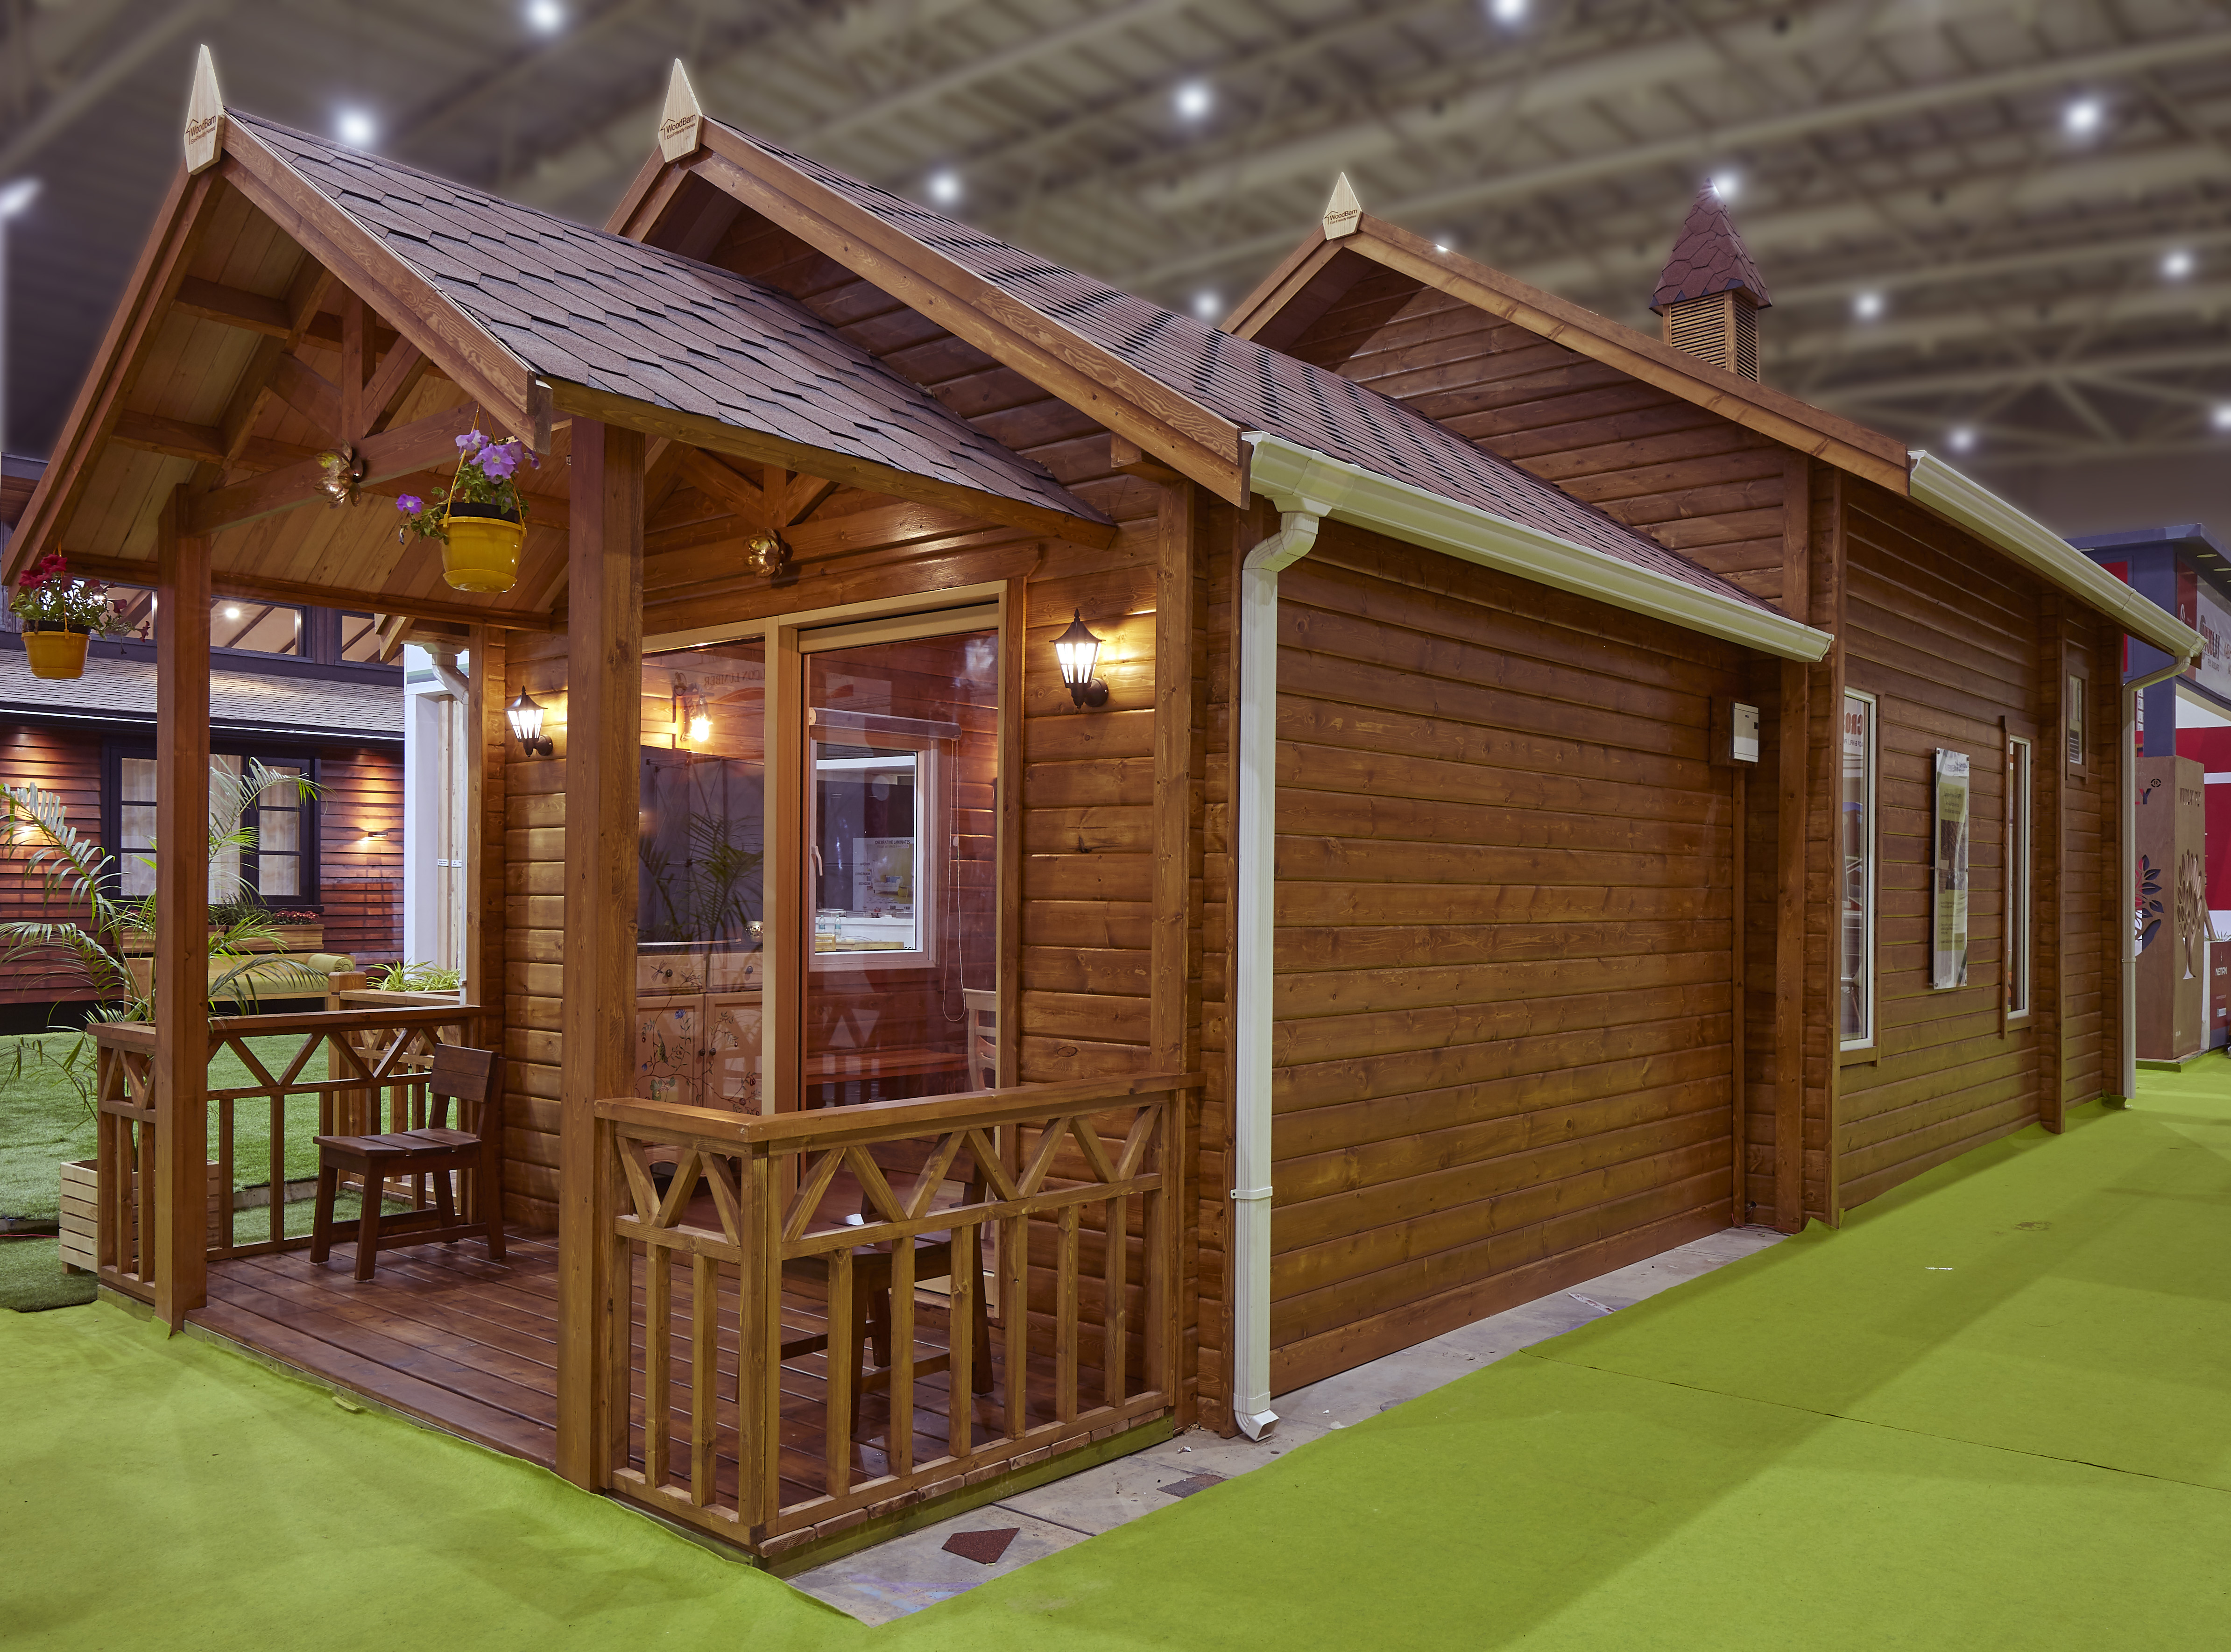 Laminated Tongue & Groove resort style cottage<abbr> India Wood exhibition 2020, Bengaluru<br>S-P-F used for structural purposes, western hemlock for furniture, yellow cedar for doors and windows.</abbr>